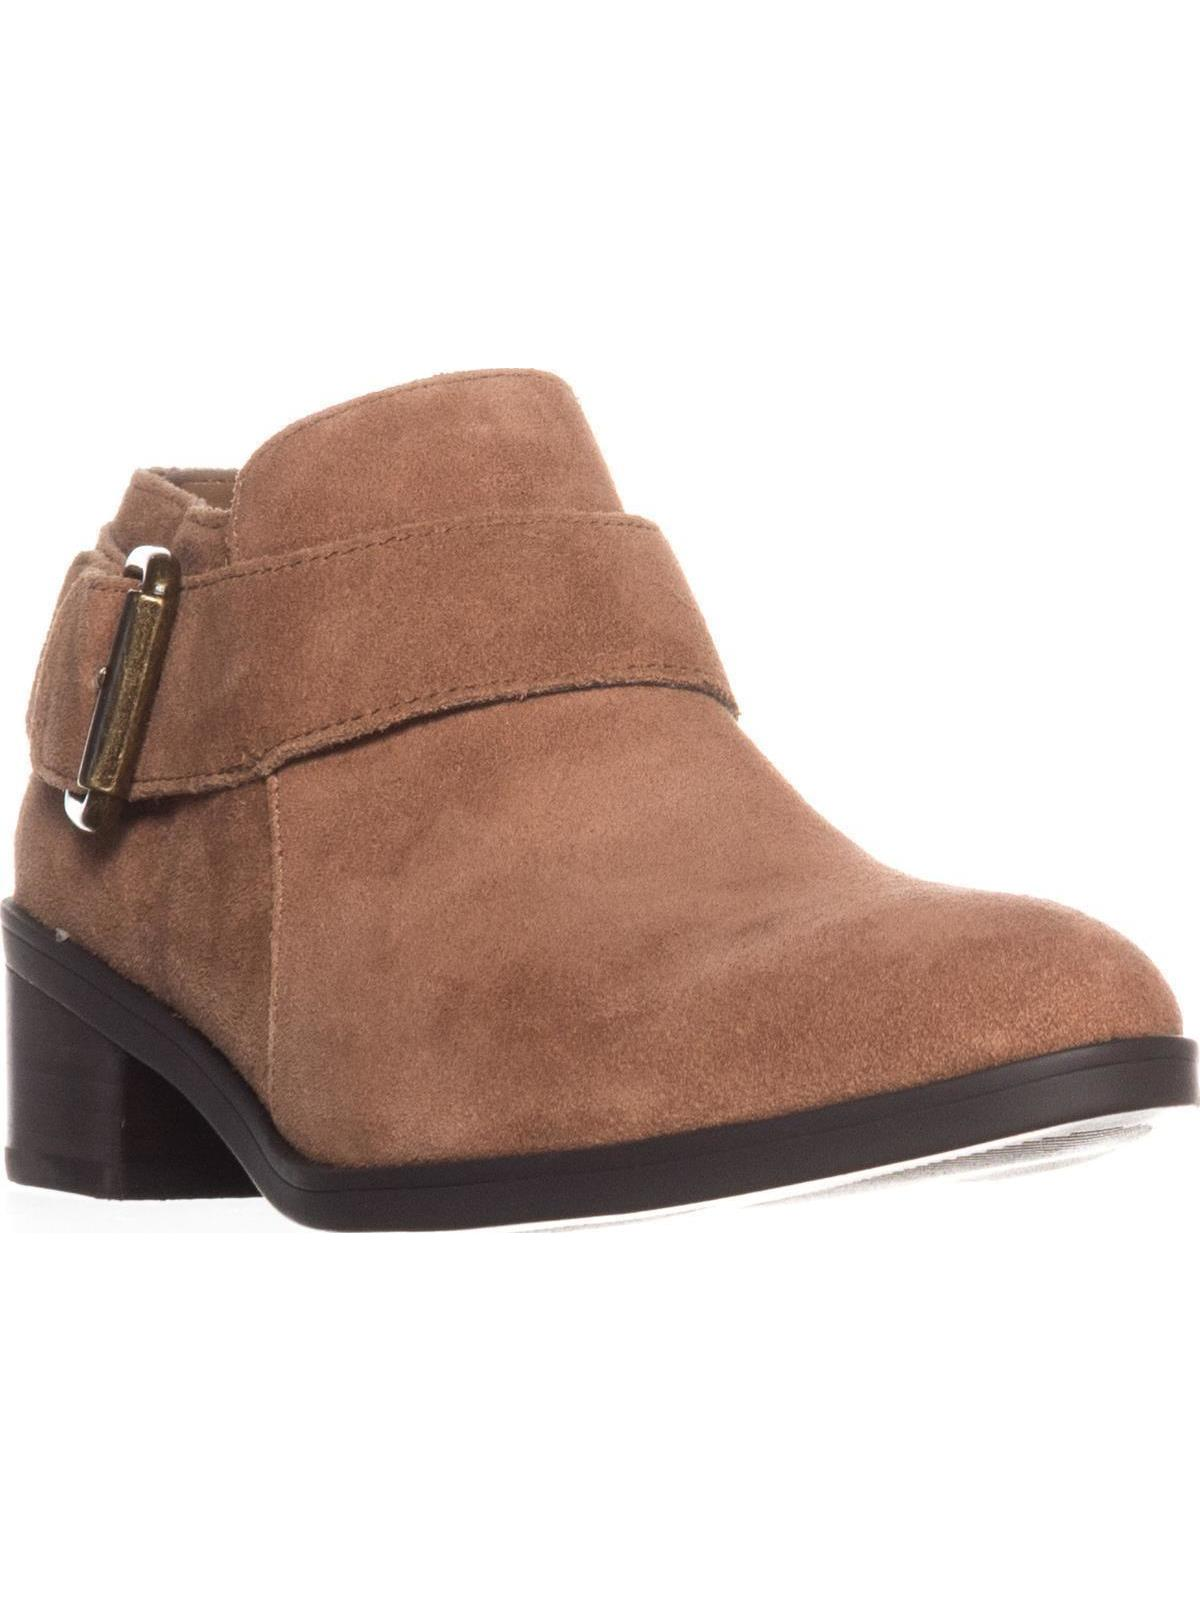 Womens Bella Vita Hadley Block-Heel Ankle Boots, Tan Suede by Bella Vita